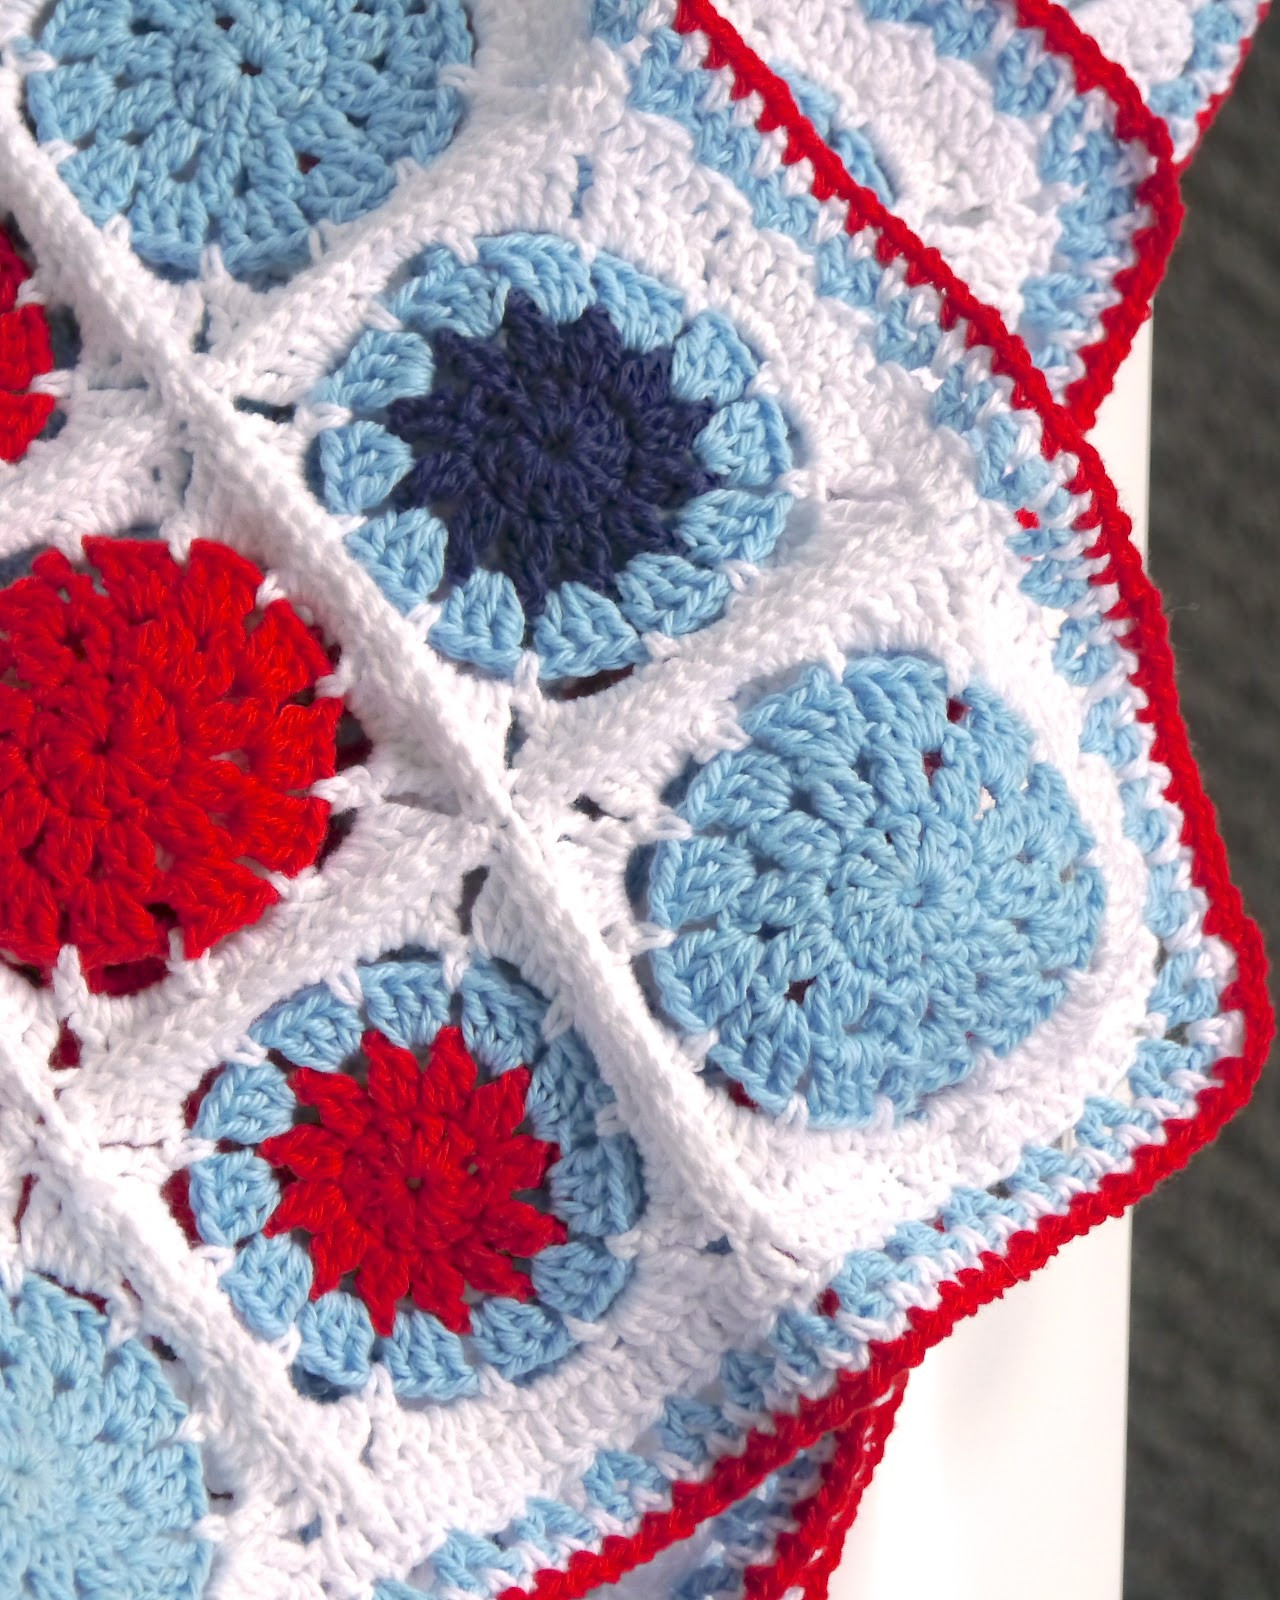 Awesome Make It Crochet Cotton Baby Blanket Circle In Square Crochet Circle Blanket Pattern Of Brilliant 42 Pictures Crochet Circle Blanket Pattern